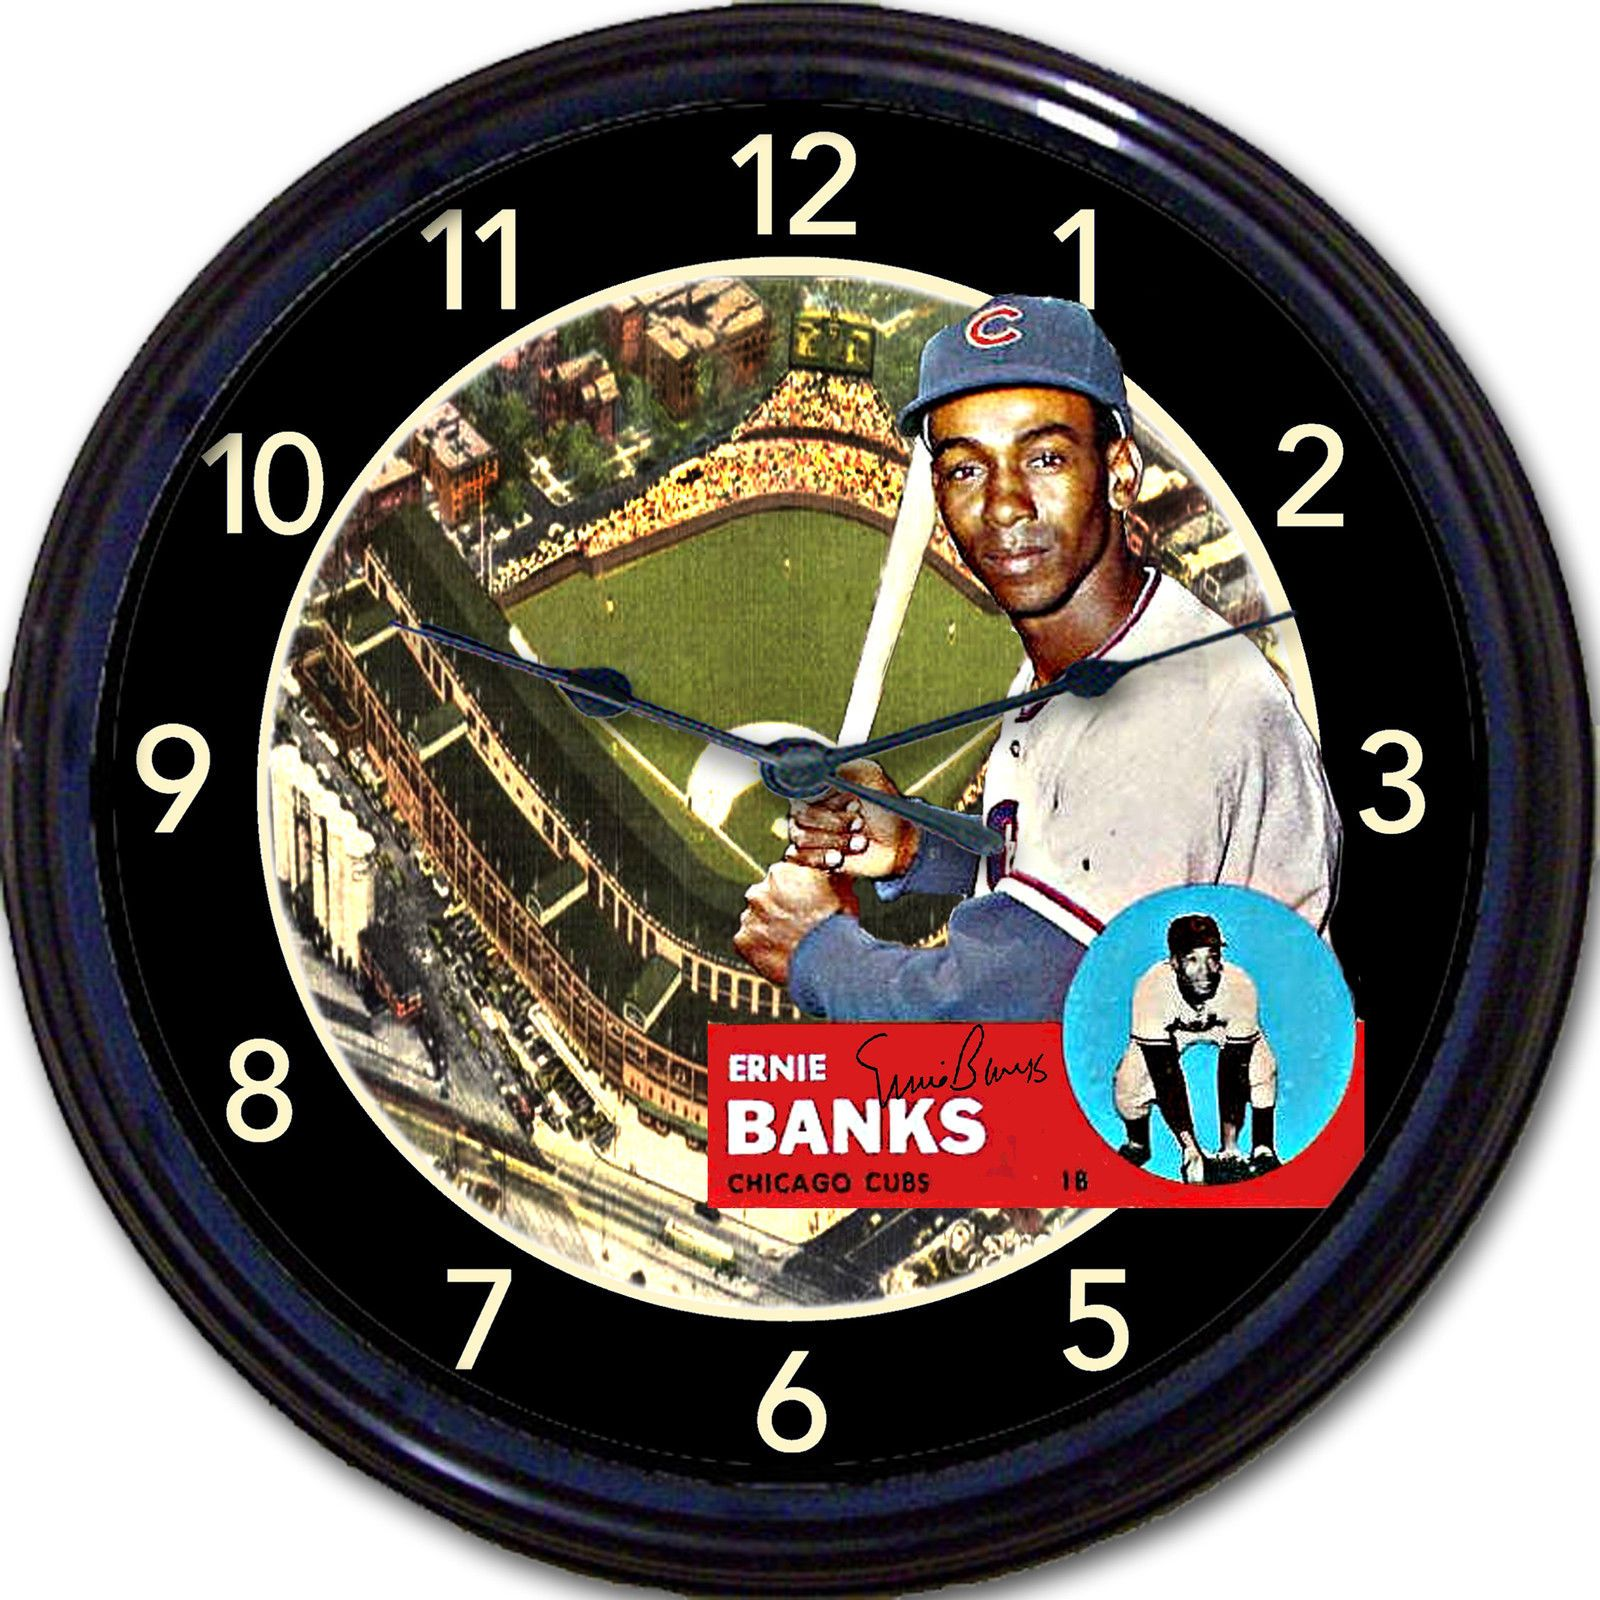 Ernie Banks Chicago Cubs Wrigley Field Baseball Card Wall Clock ...